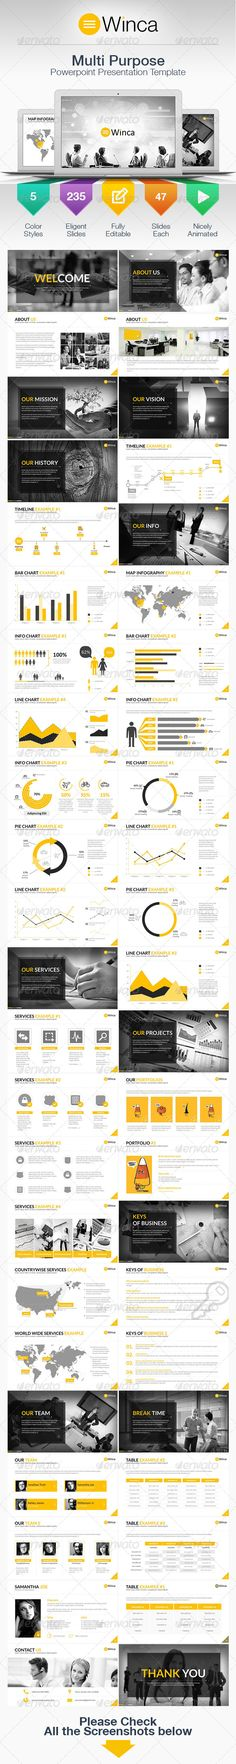 Buy Winca Multipurpose Business Power Point Template by thilinaruwan on GraphicRiver. Check the demo video here Multipurpose Business Power Point Template A creative, modern and slick presentation for mu. Presentation Deck, Presentation Styles, Corporate Presentation, Presentation Templates, Ppt Template Design, Keynote Template, Layout, Cool Powerpoint, Web Design